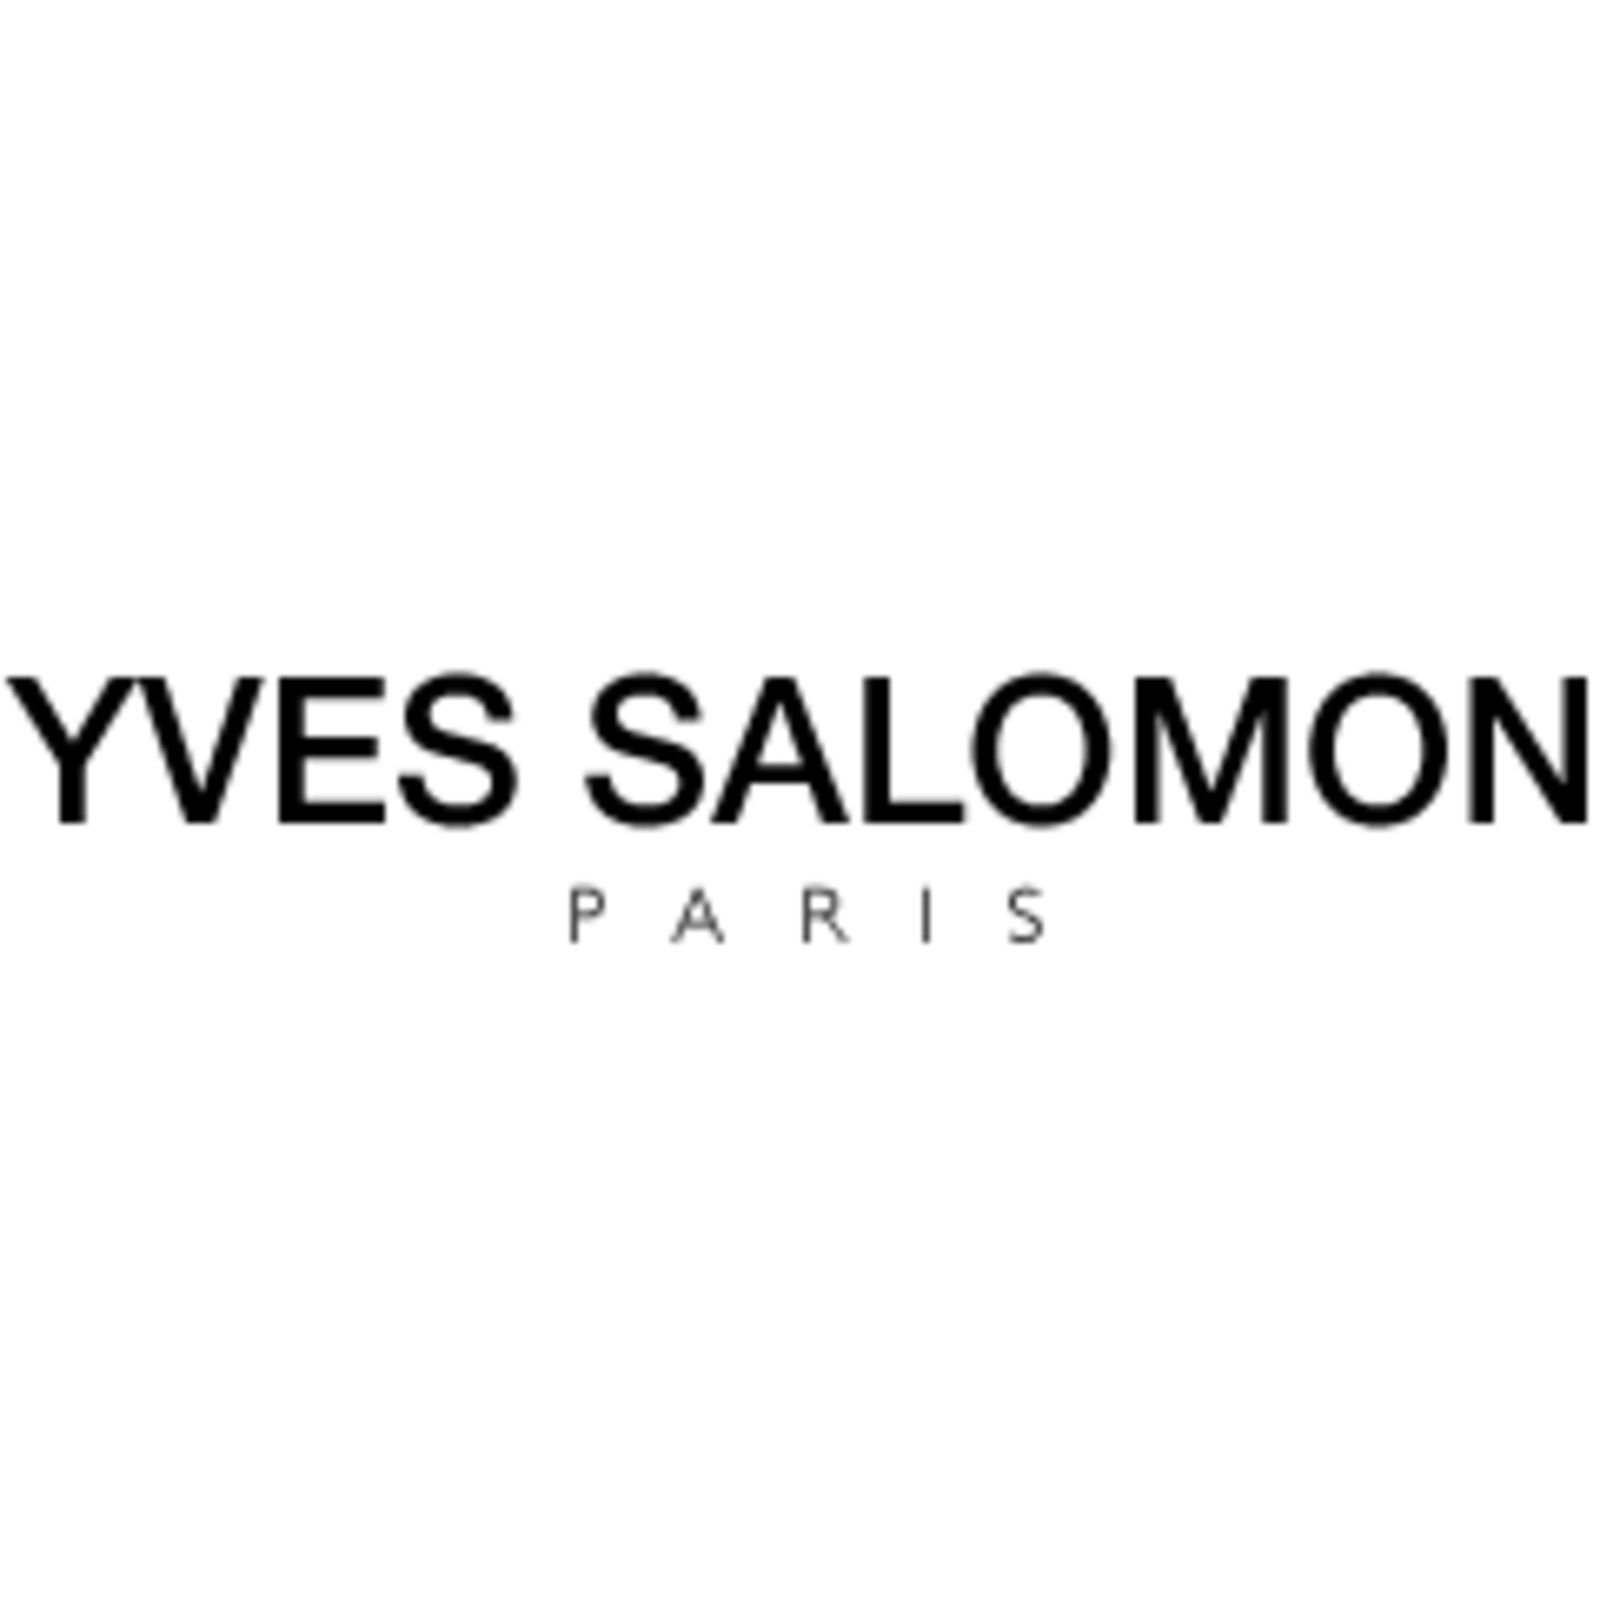 YVES SALOMON